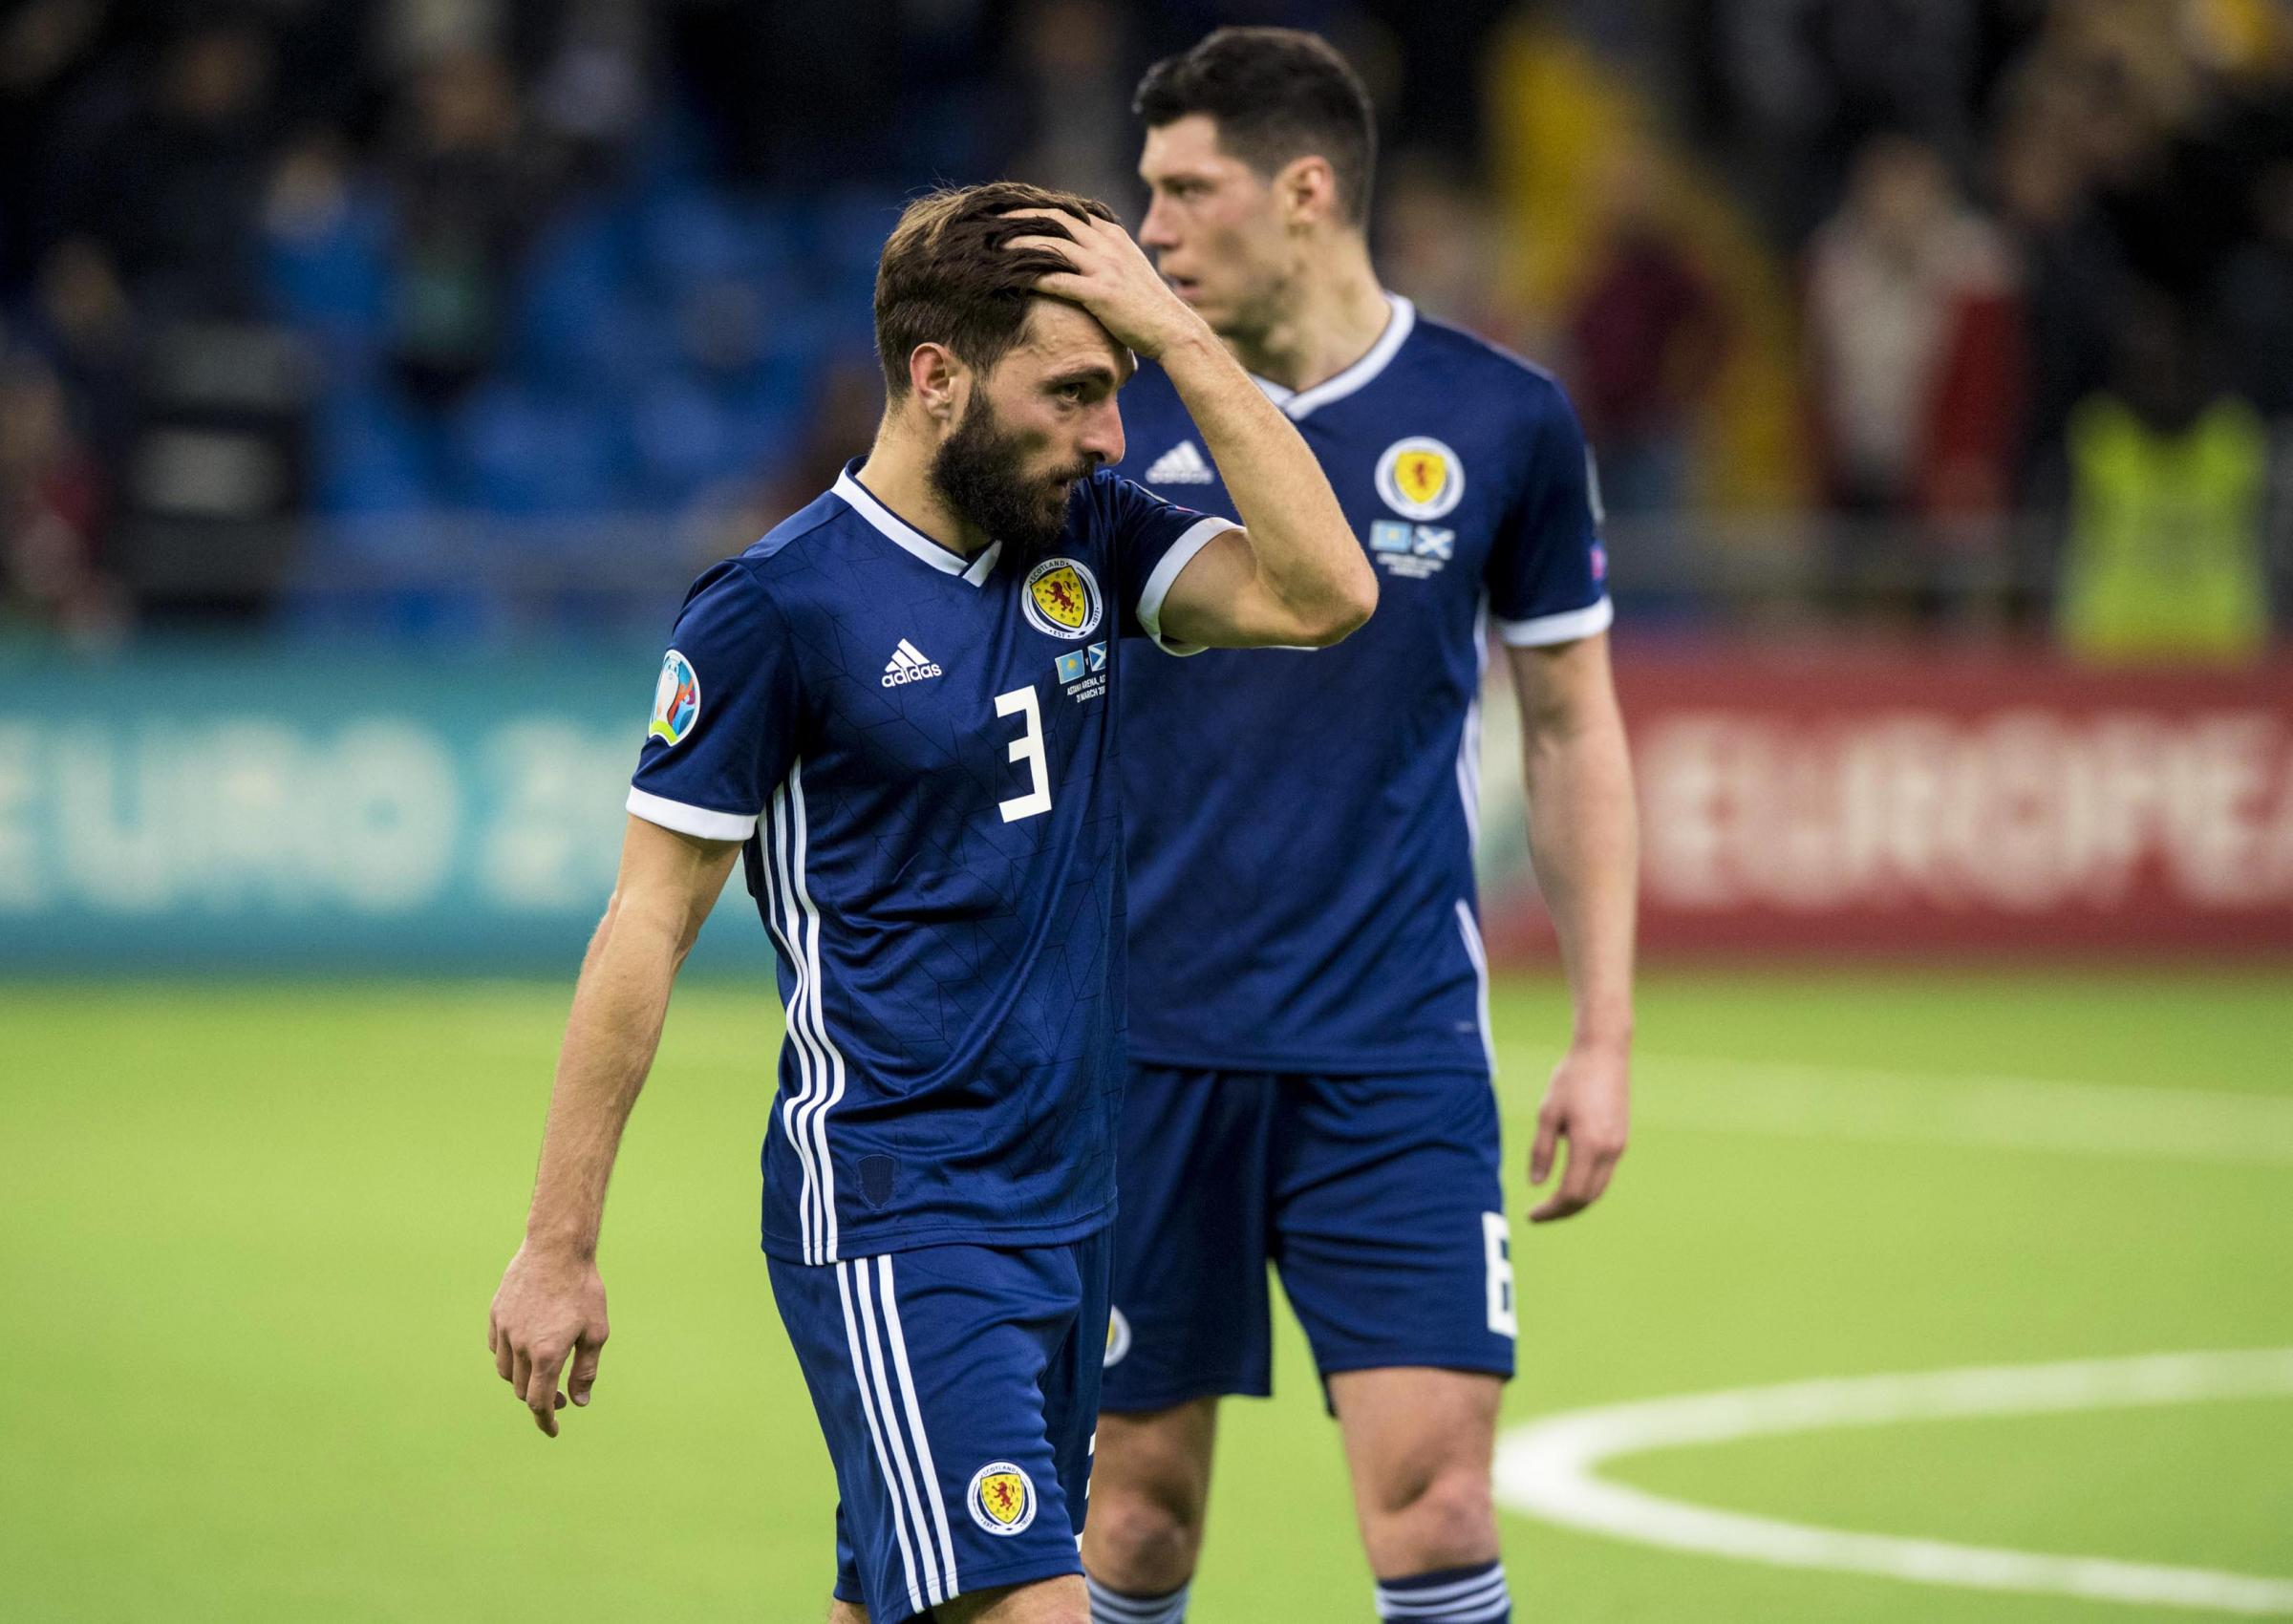 Graeme Shinnie had a performance to forget at left-back